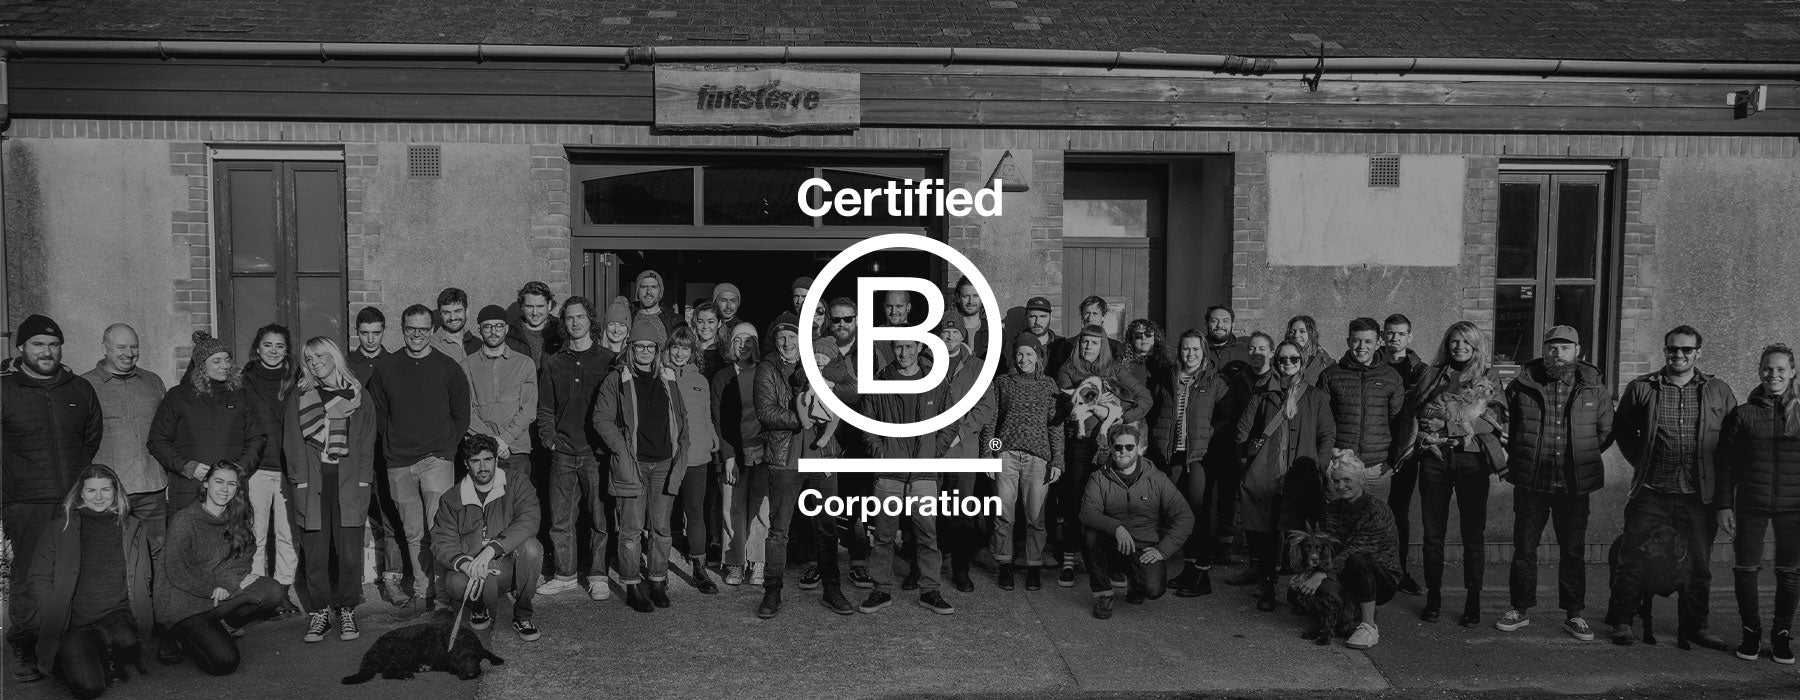 B Corp Certified - The Finisterre Team at Wheal Kitty Head Office